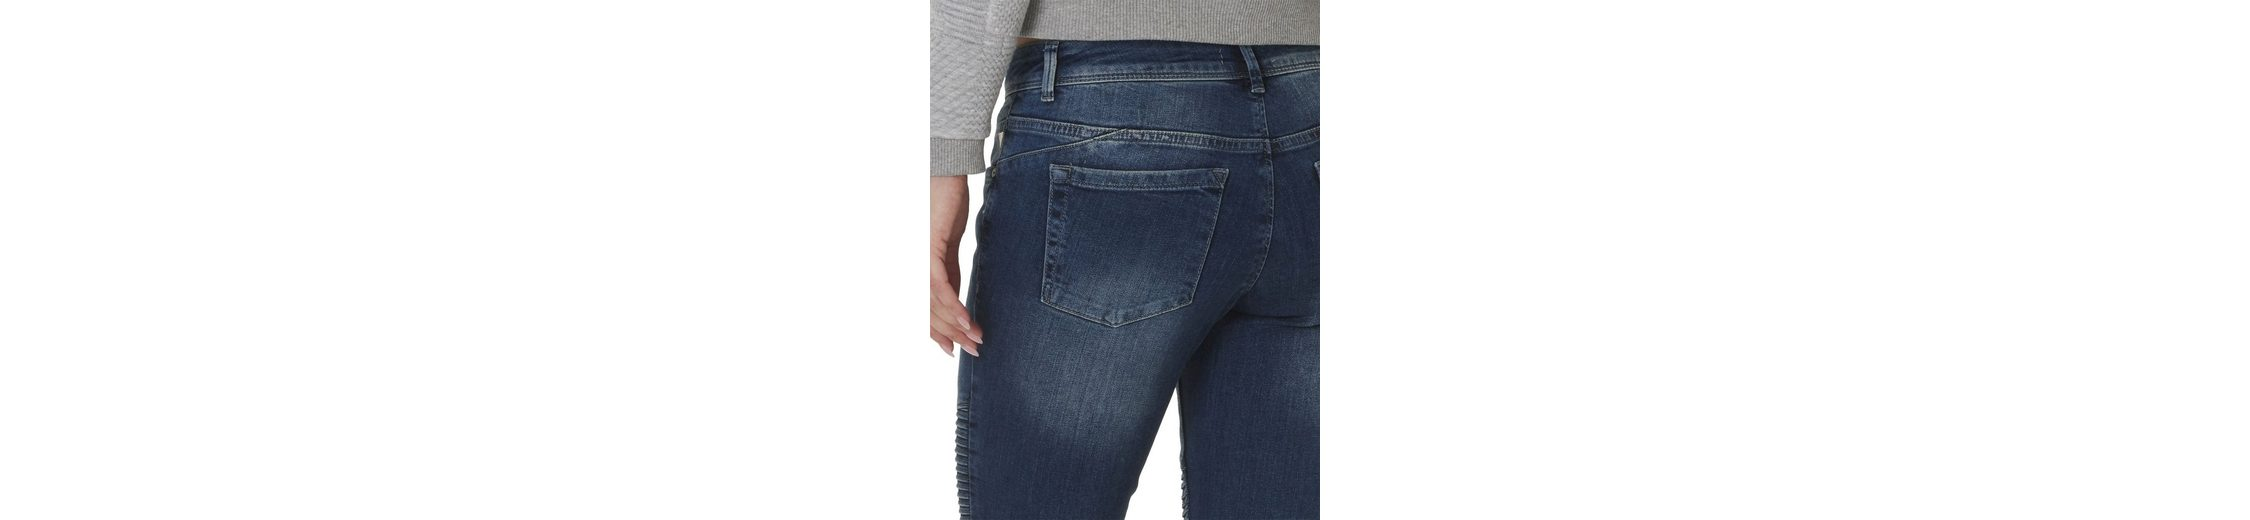 Betty&Co Jeans mit Muster am Knie